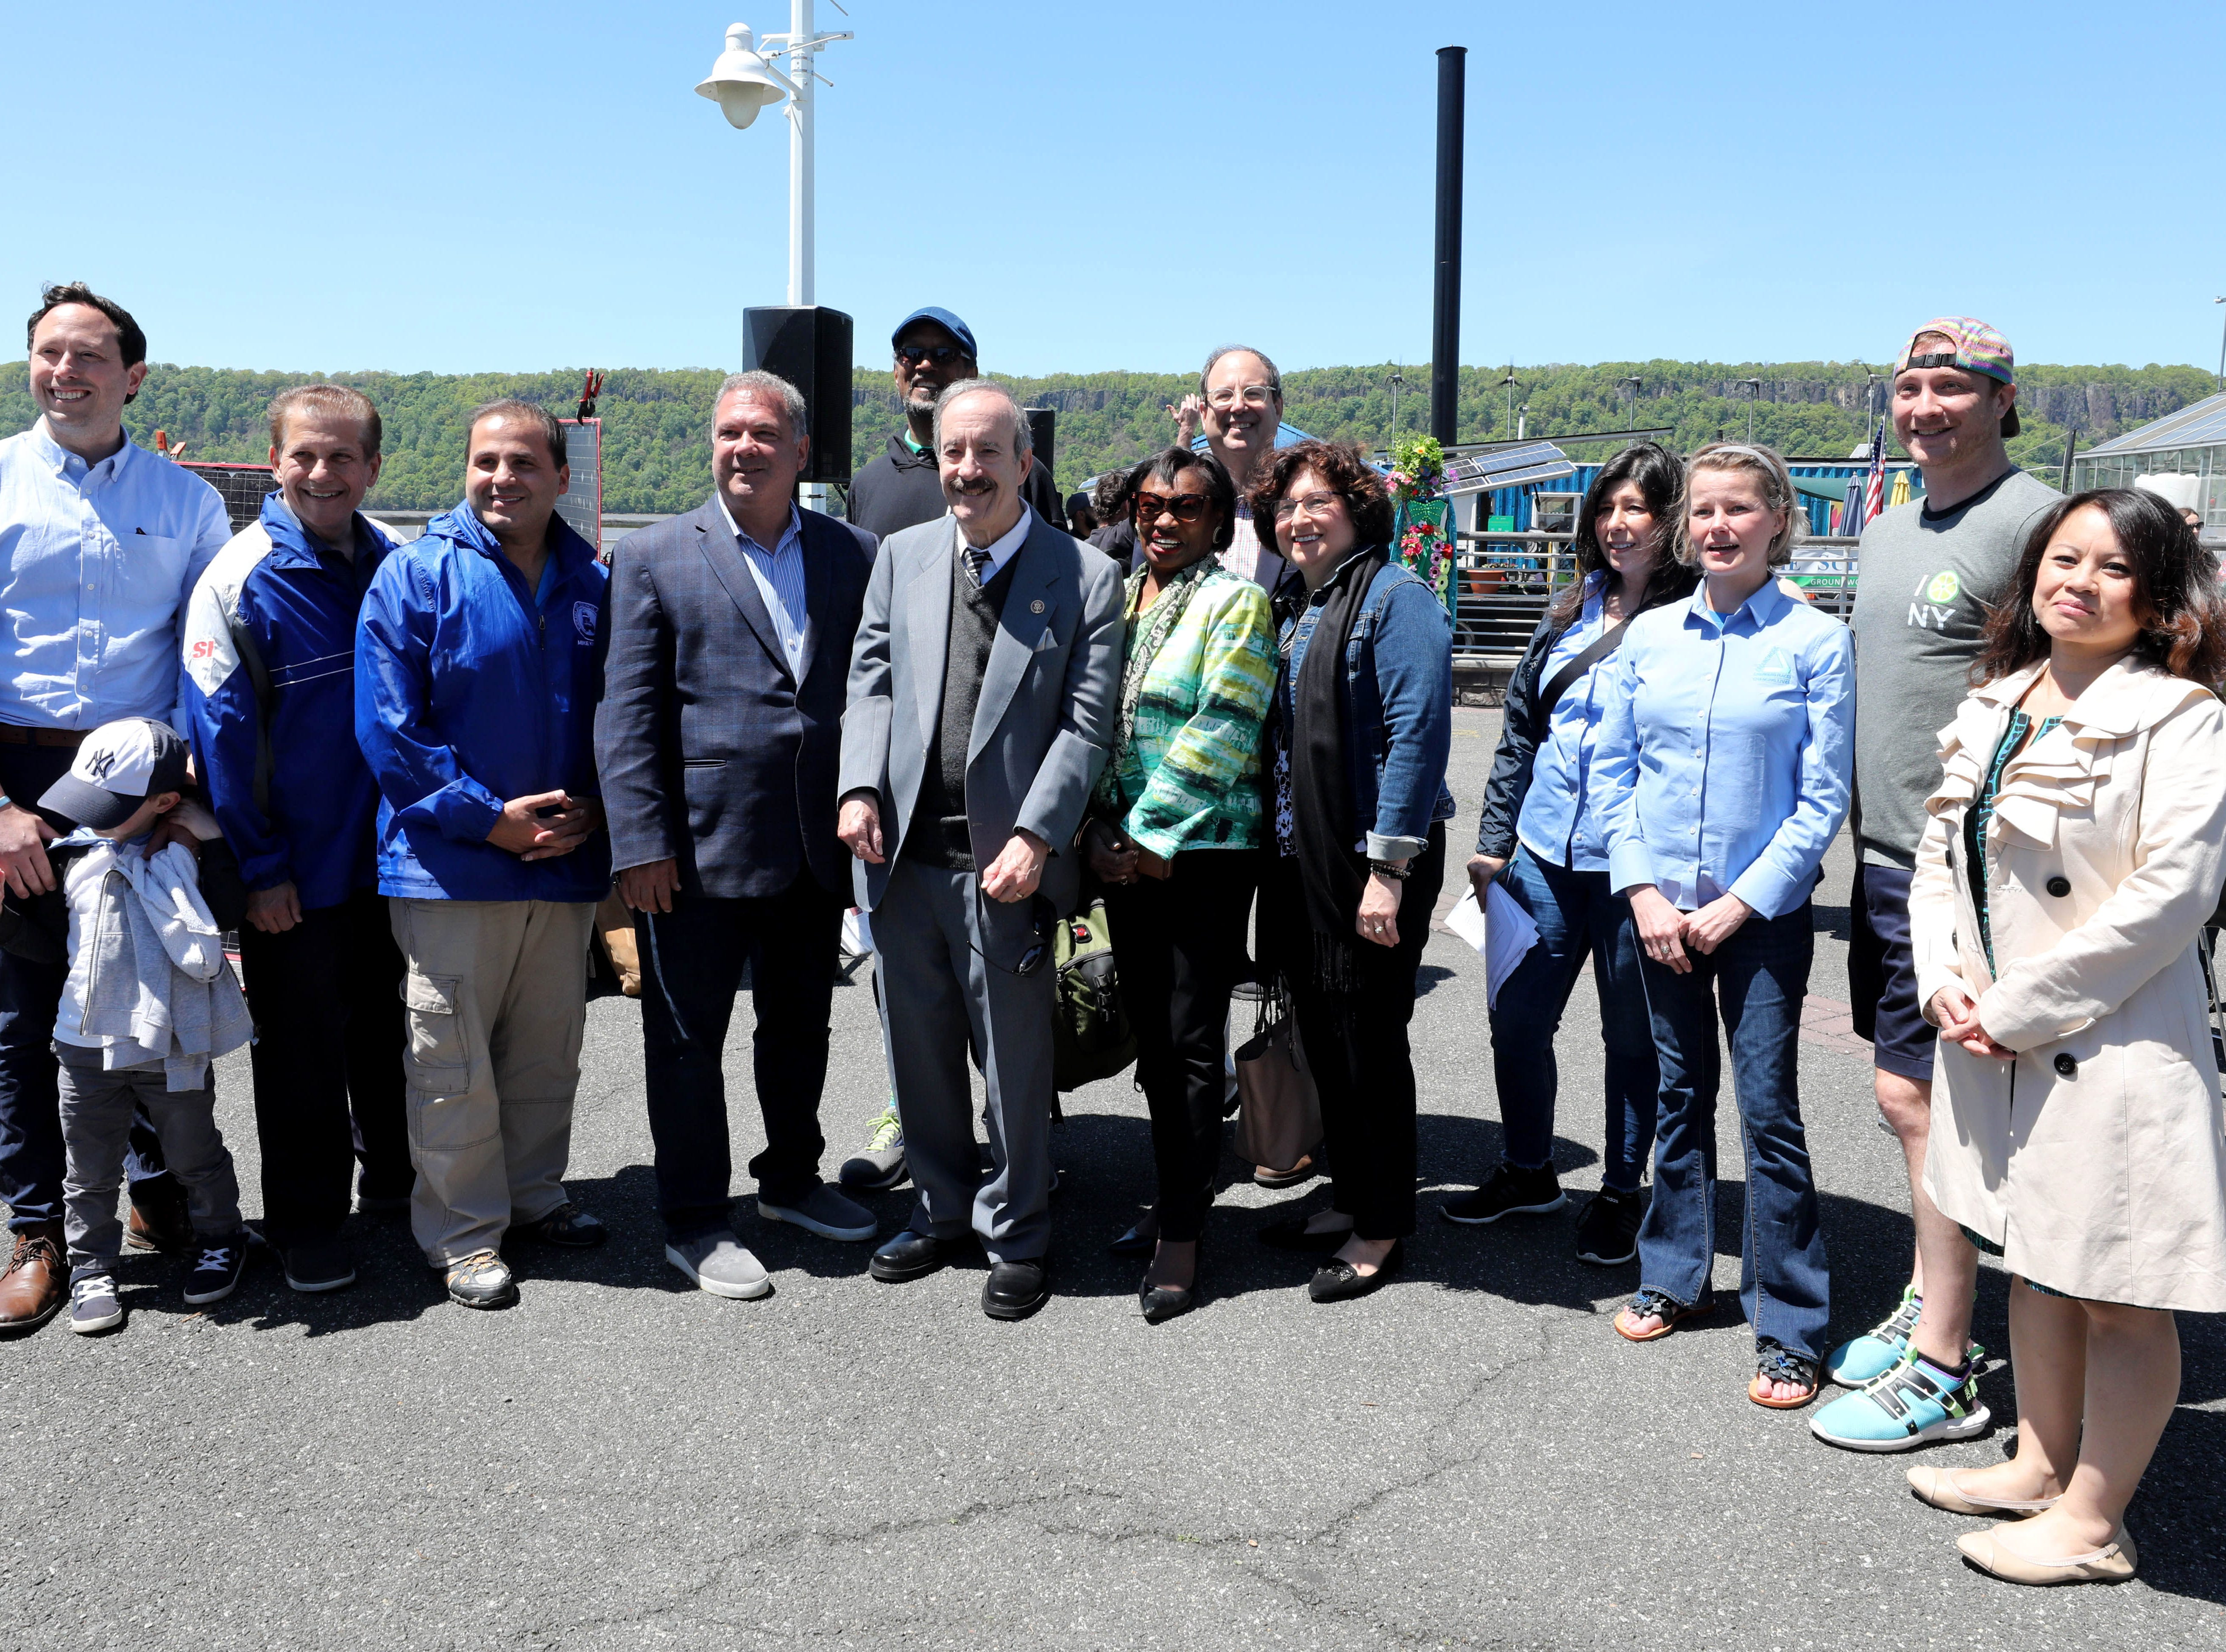 The group of guests and politicians pose for a photo during the 11th annual opening of the Science Barge  on the Hudson River in Yonkers, May 11, 2019. The floating environmental education center has undergone an almost $1million enhancement, completed over the past two years.